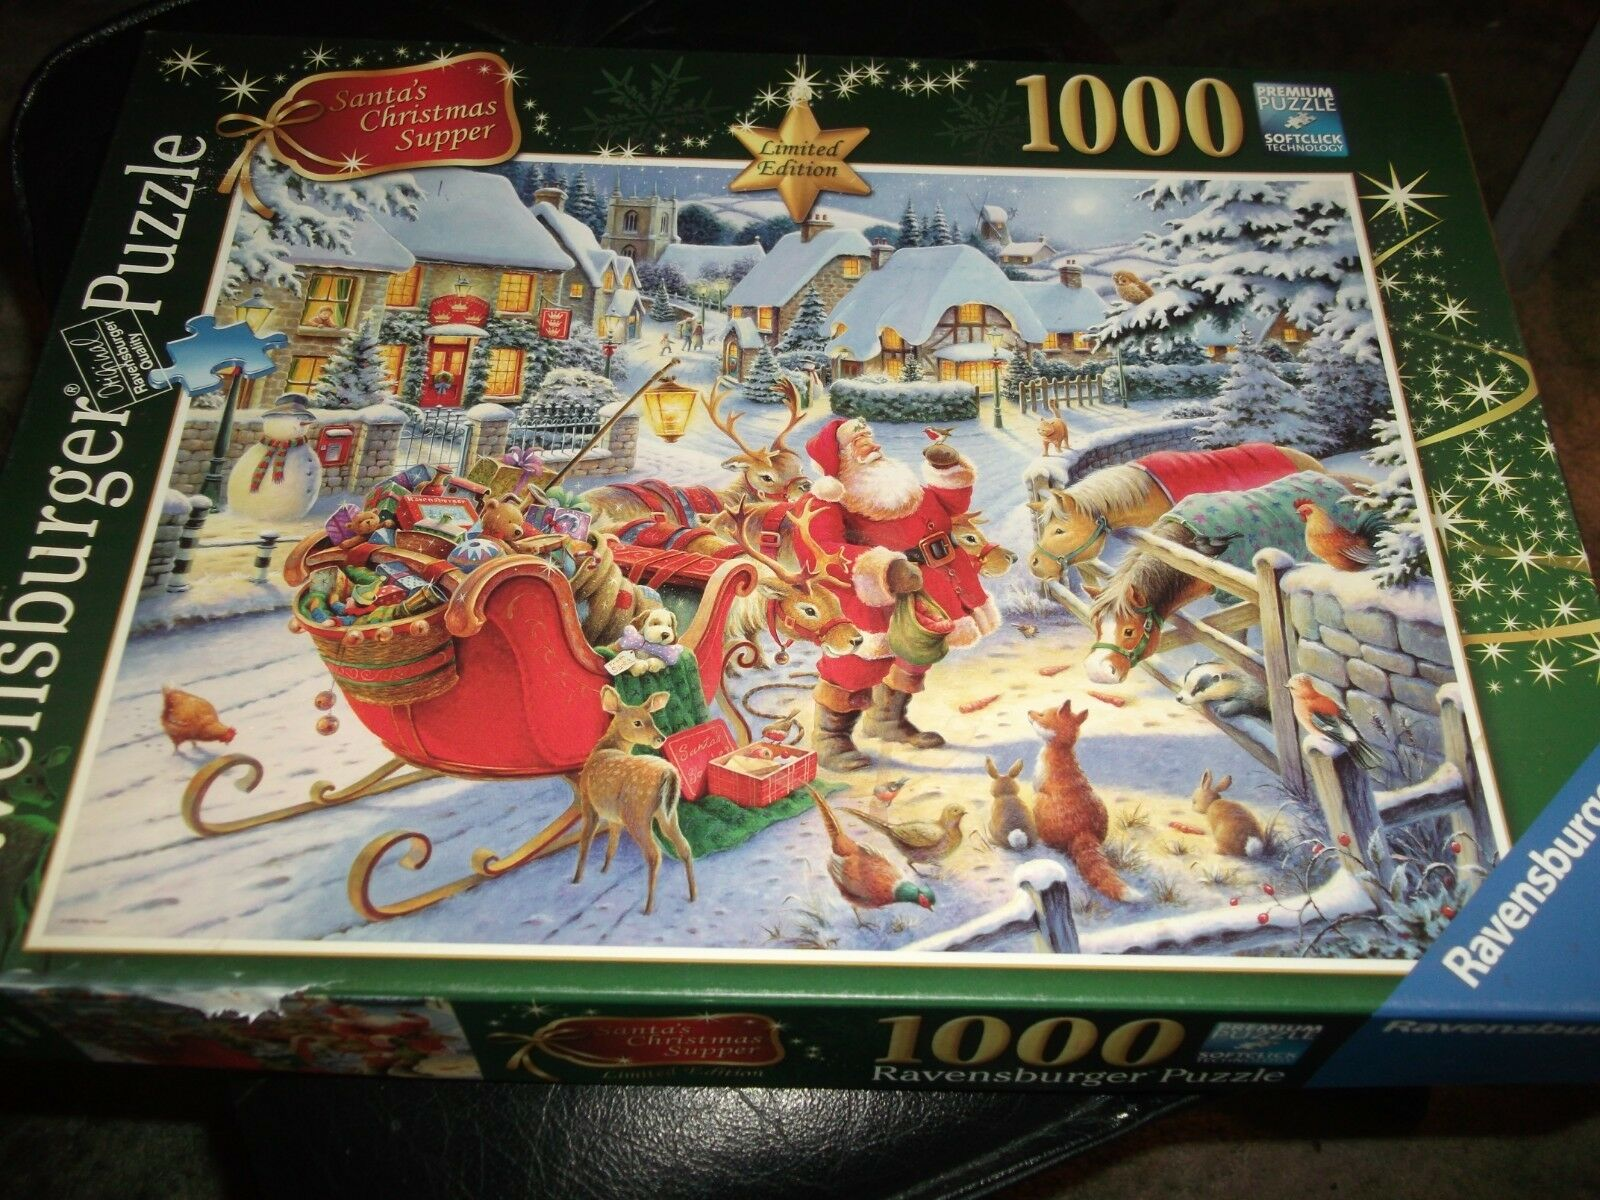 Ravensburger RARE Santas Christmas Supper Jigsaw Puzzle Game 1000 Pieces